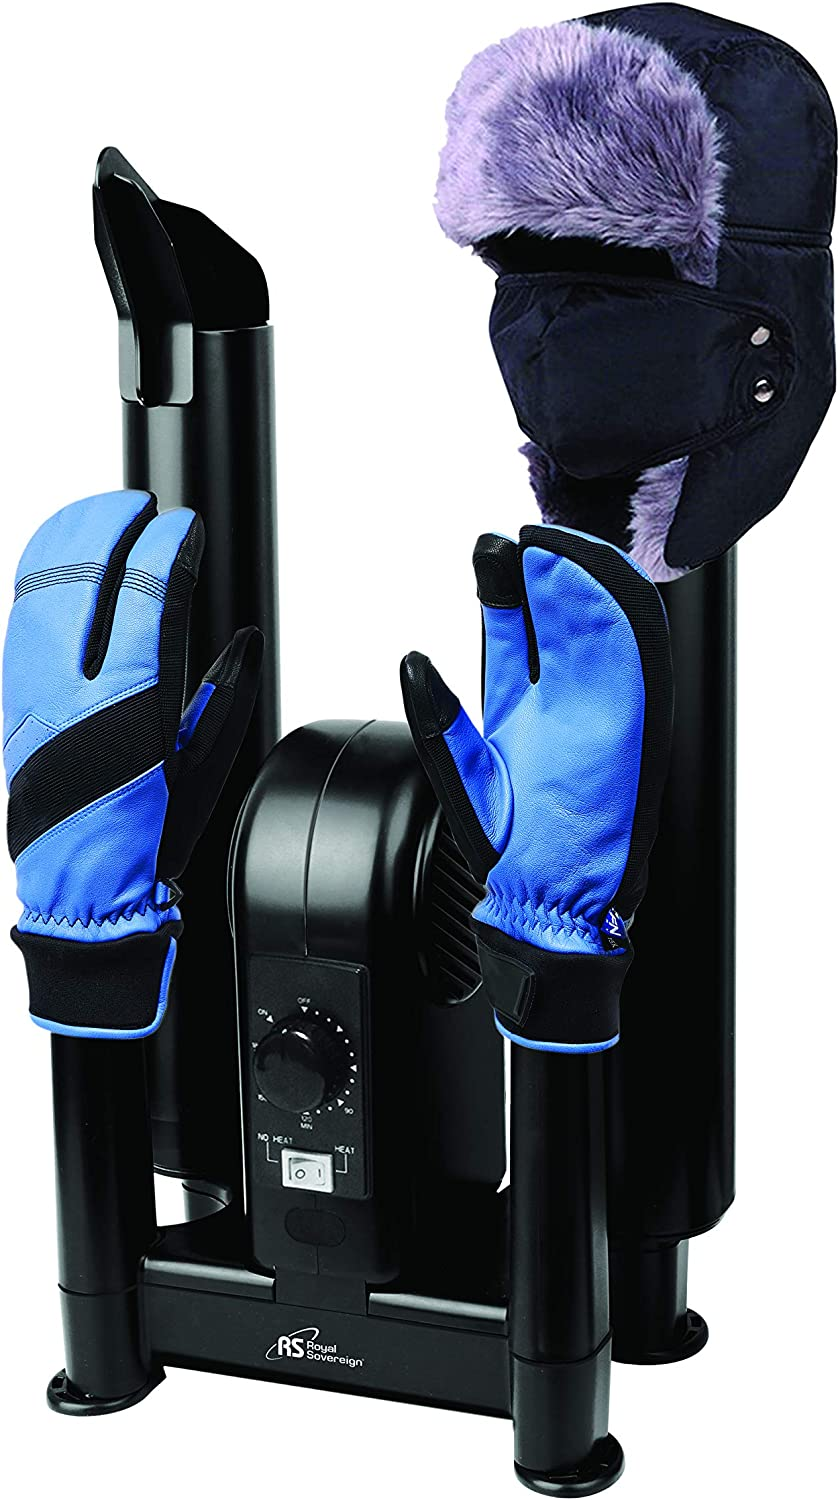 HBD-200 Mitten Dryer /& Warmer Glove Hat Royal Sovereign Portable Electric Forced Air Boot